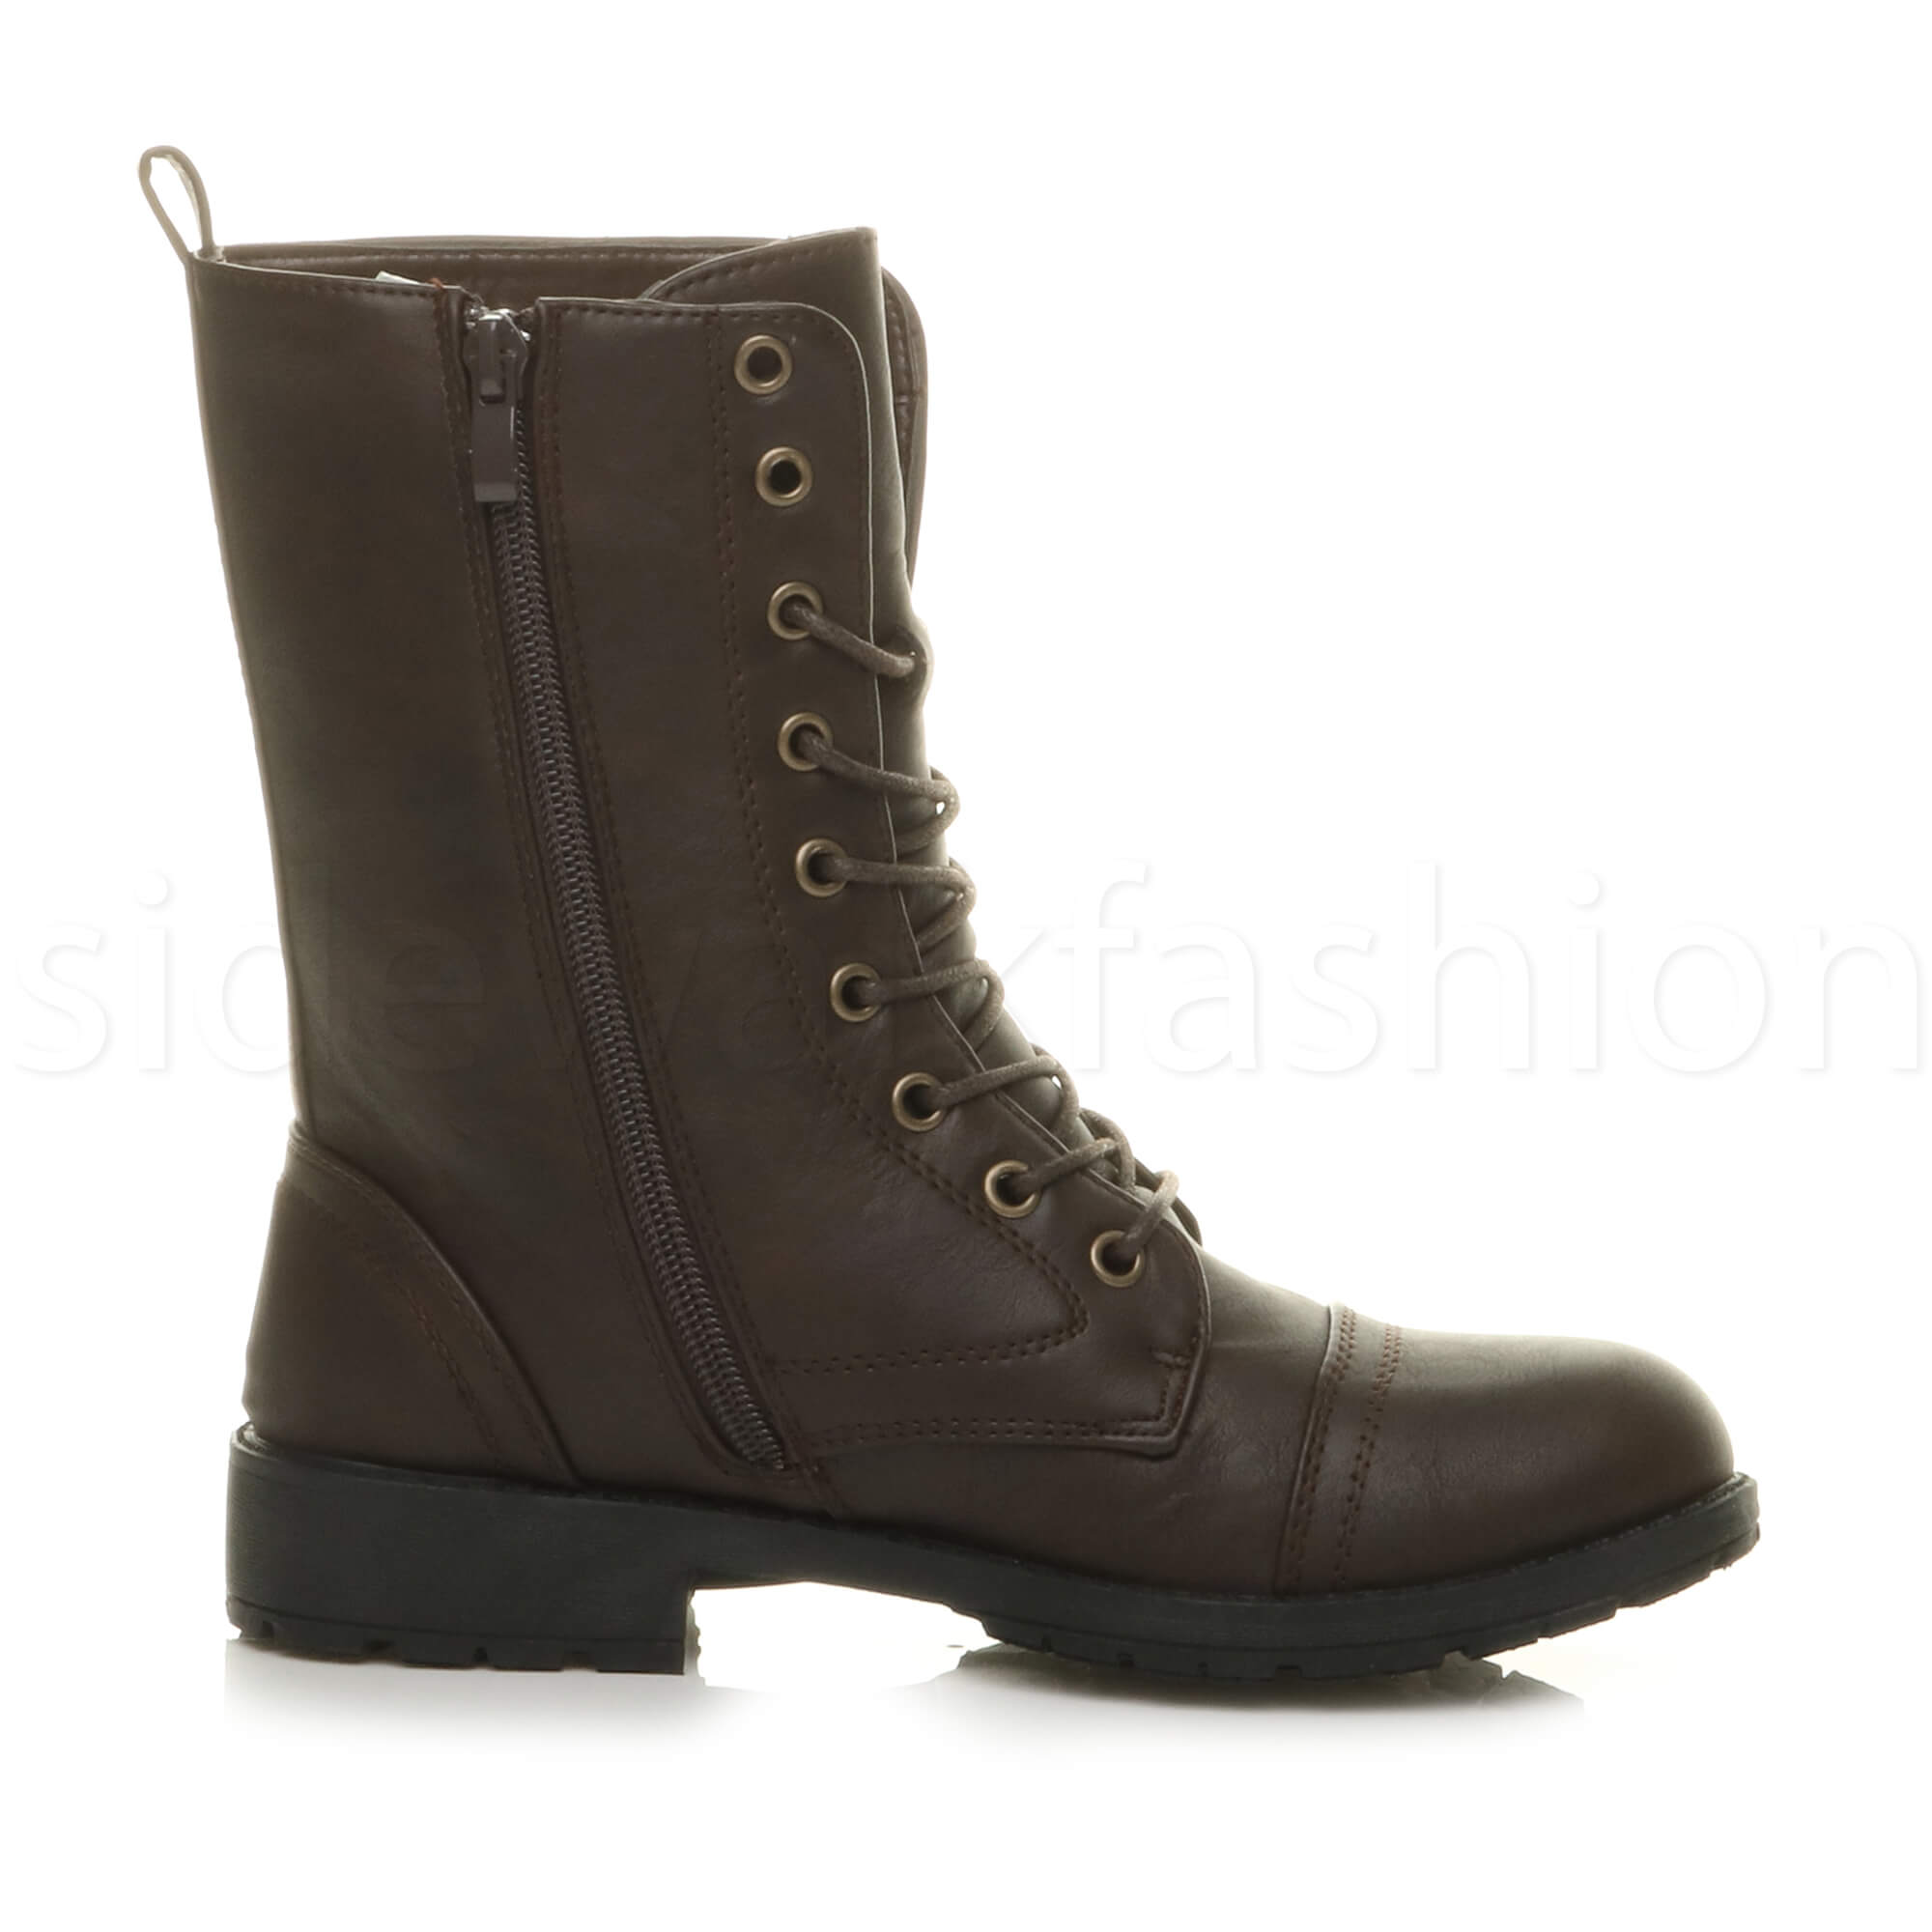 Womens-ladies-low-heel-flat-lace-up-zip-combat-biker-military-ankle-boots-size thumbnail 44